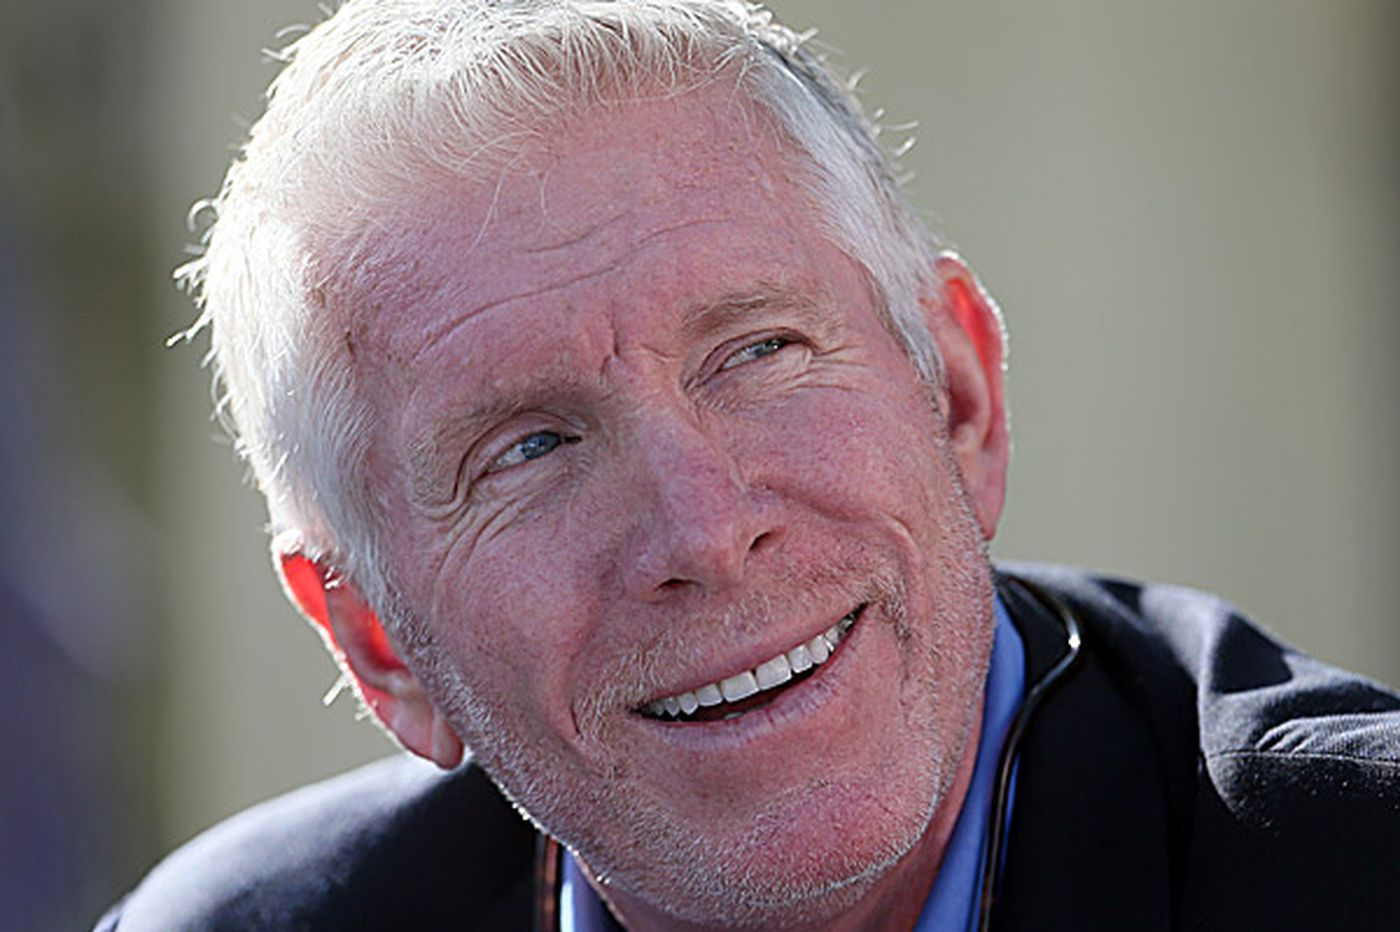 In the end, Mike Schmidt did it his way